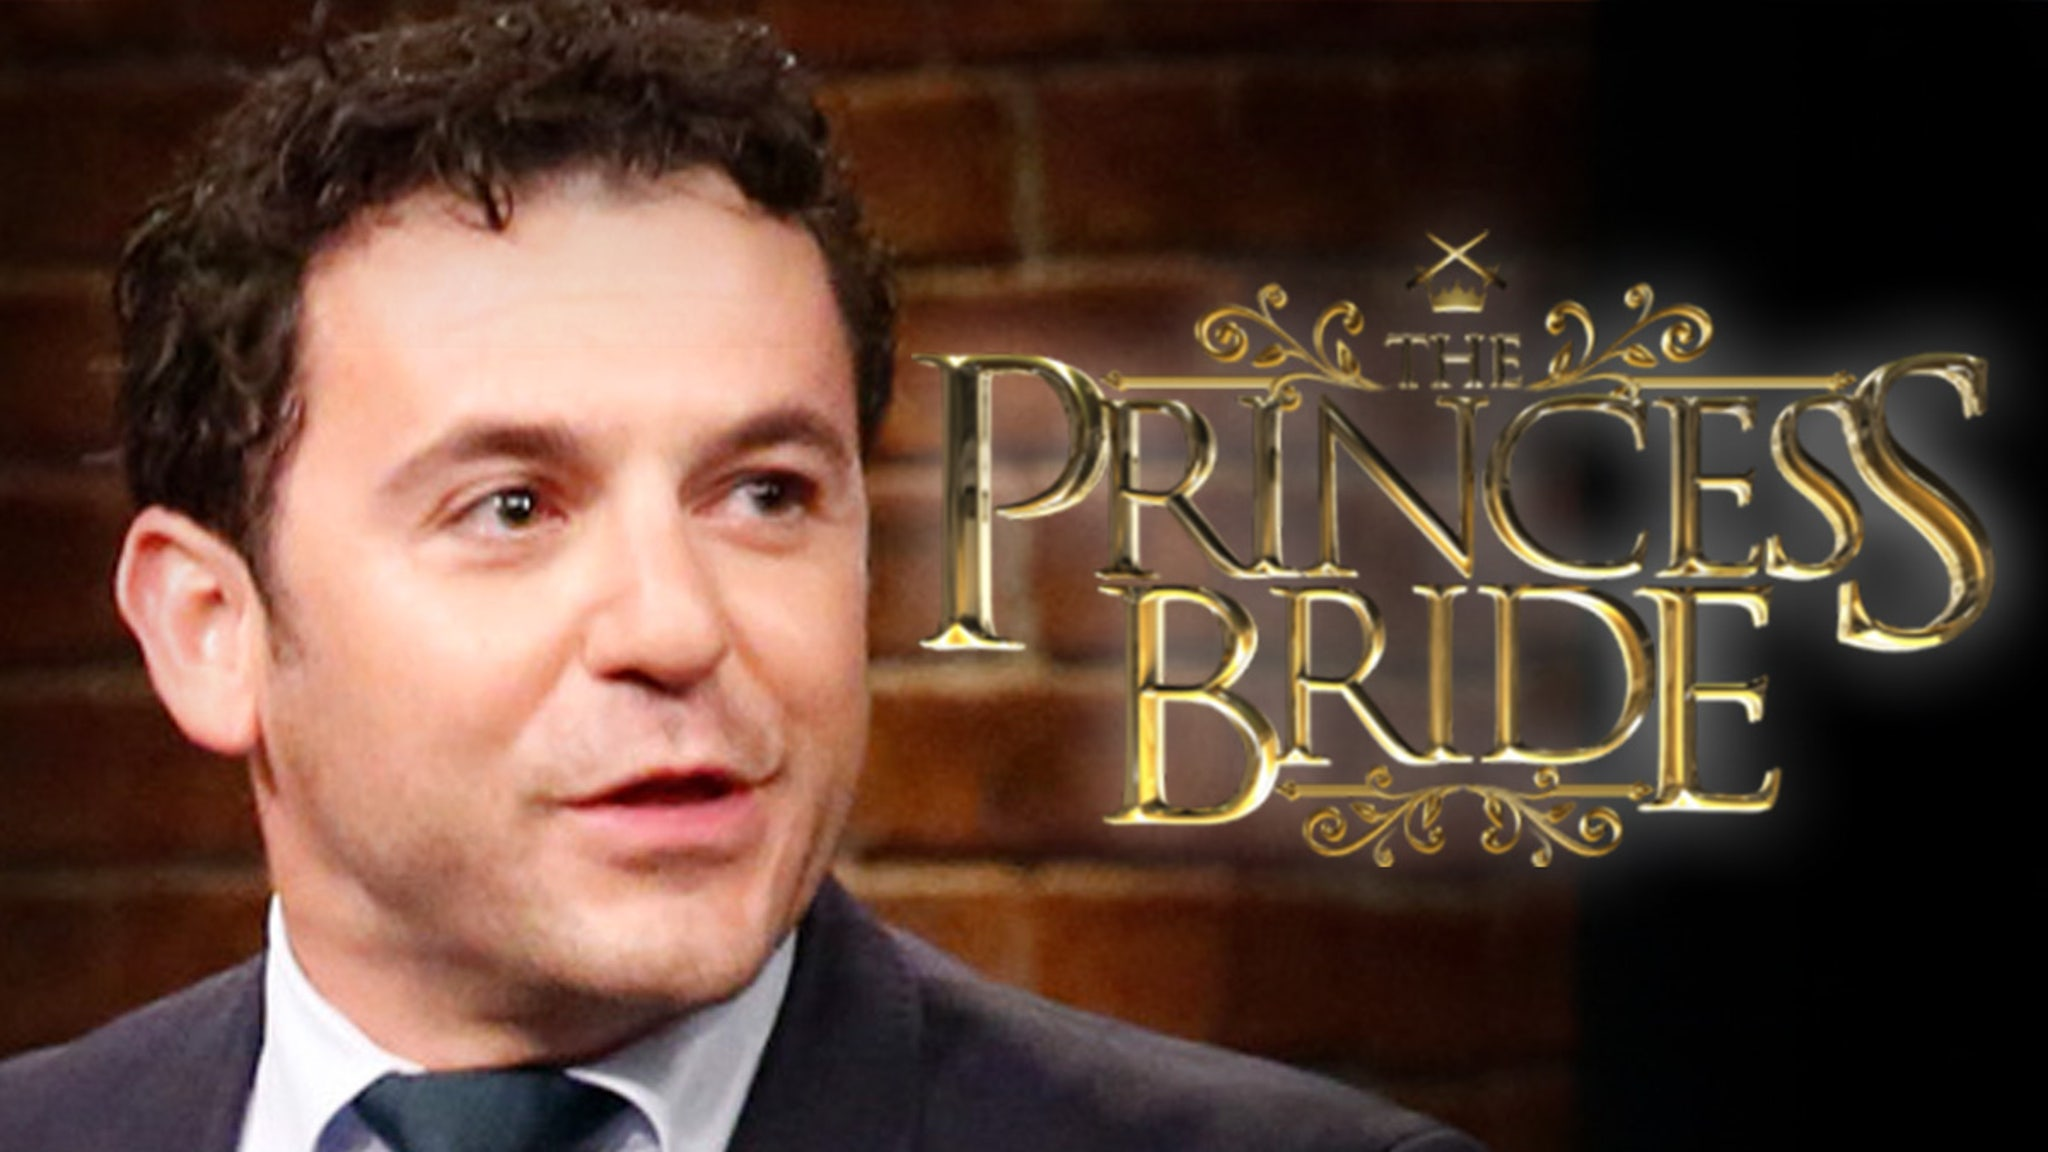 'Princess Bride' Reunion Politics Non-Factor in Fred Savage's Absence